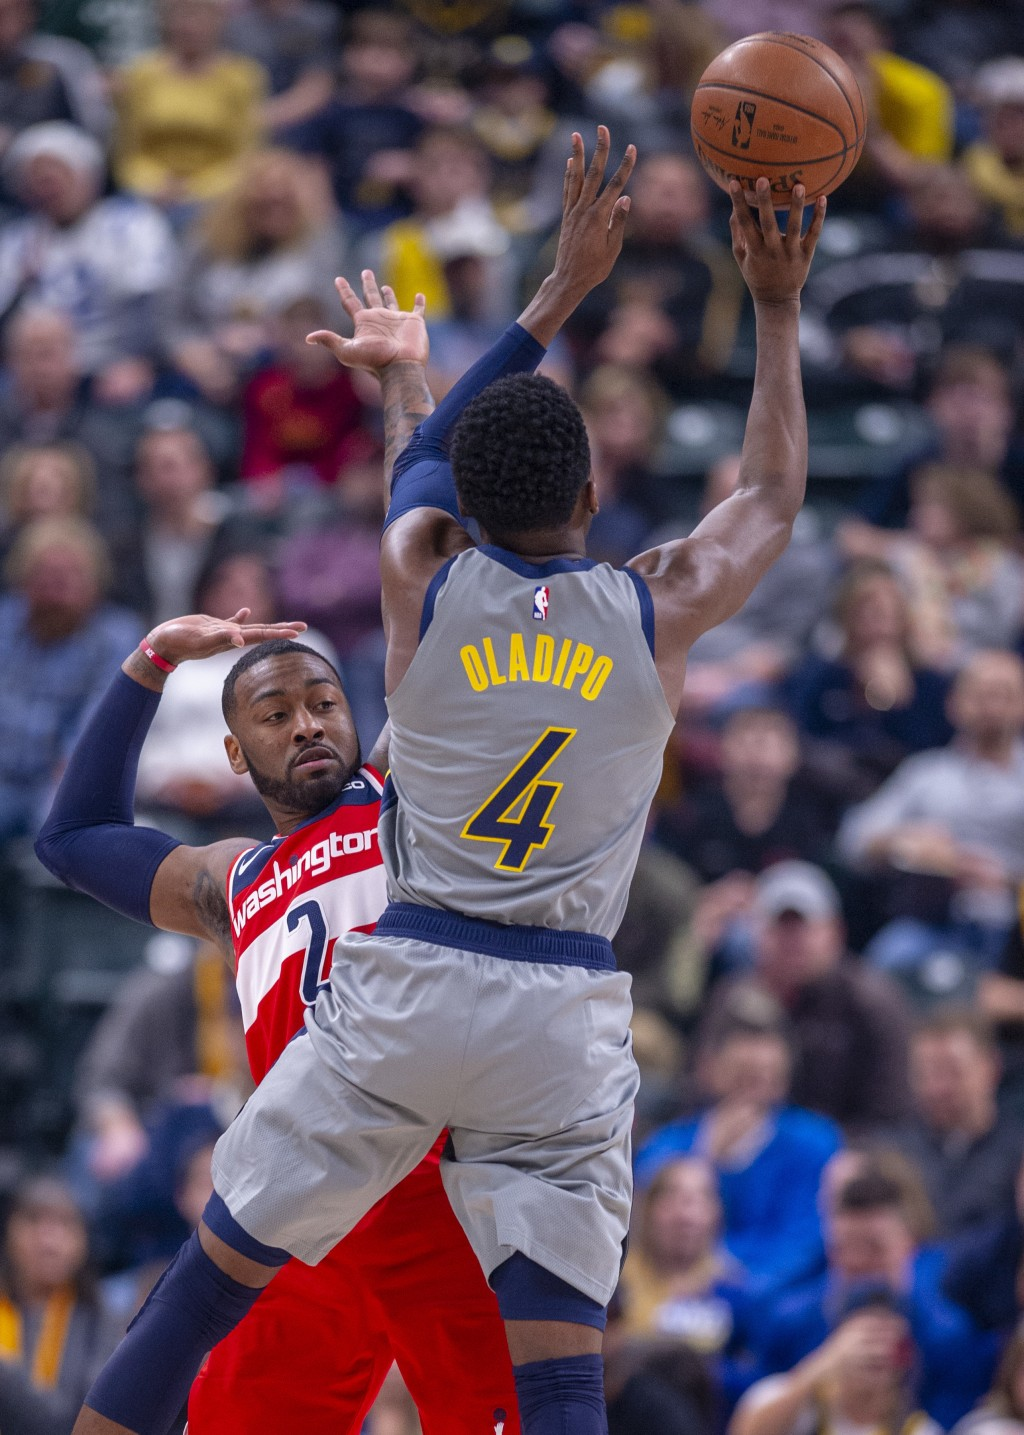 Indiana Pacers guard Victor Oladipo (4) collides with Washington Wizards guard John Wall (2) as he shoots during an NBA basketball game, Sunday, Dec. ...